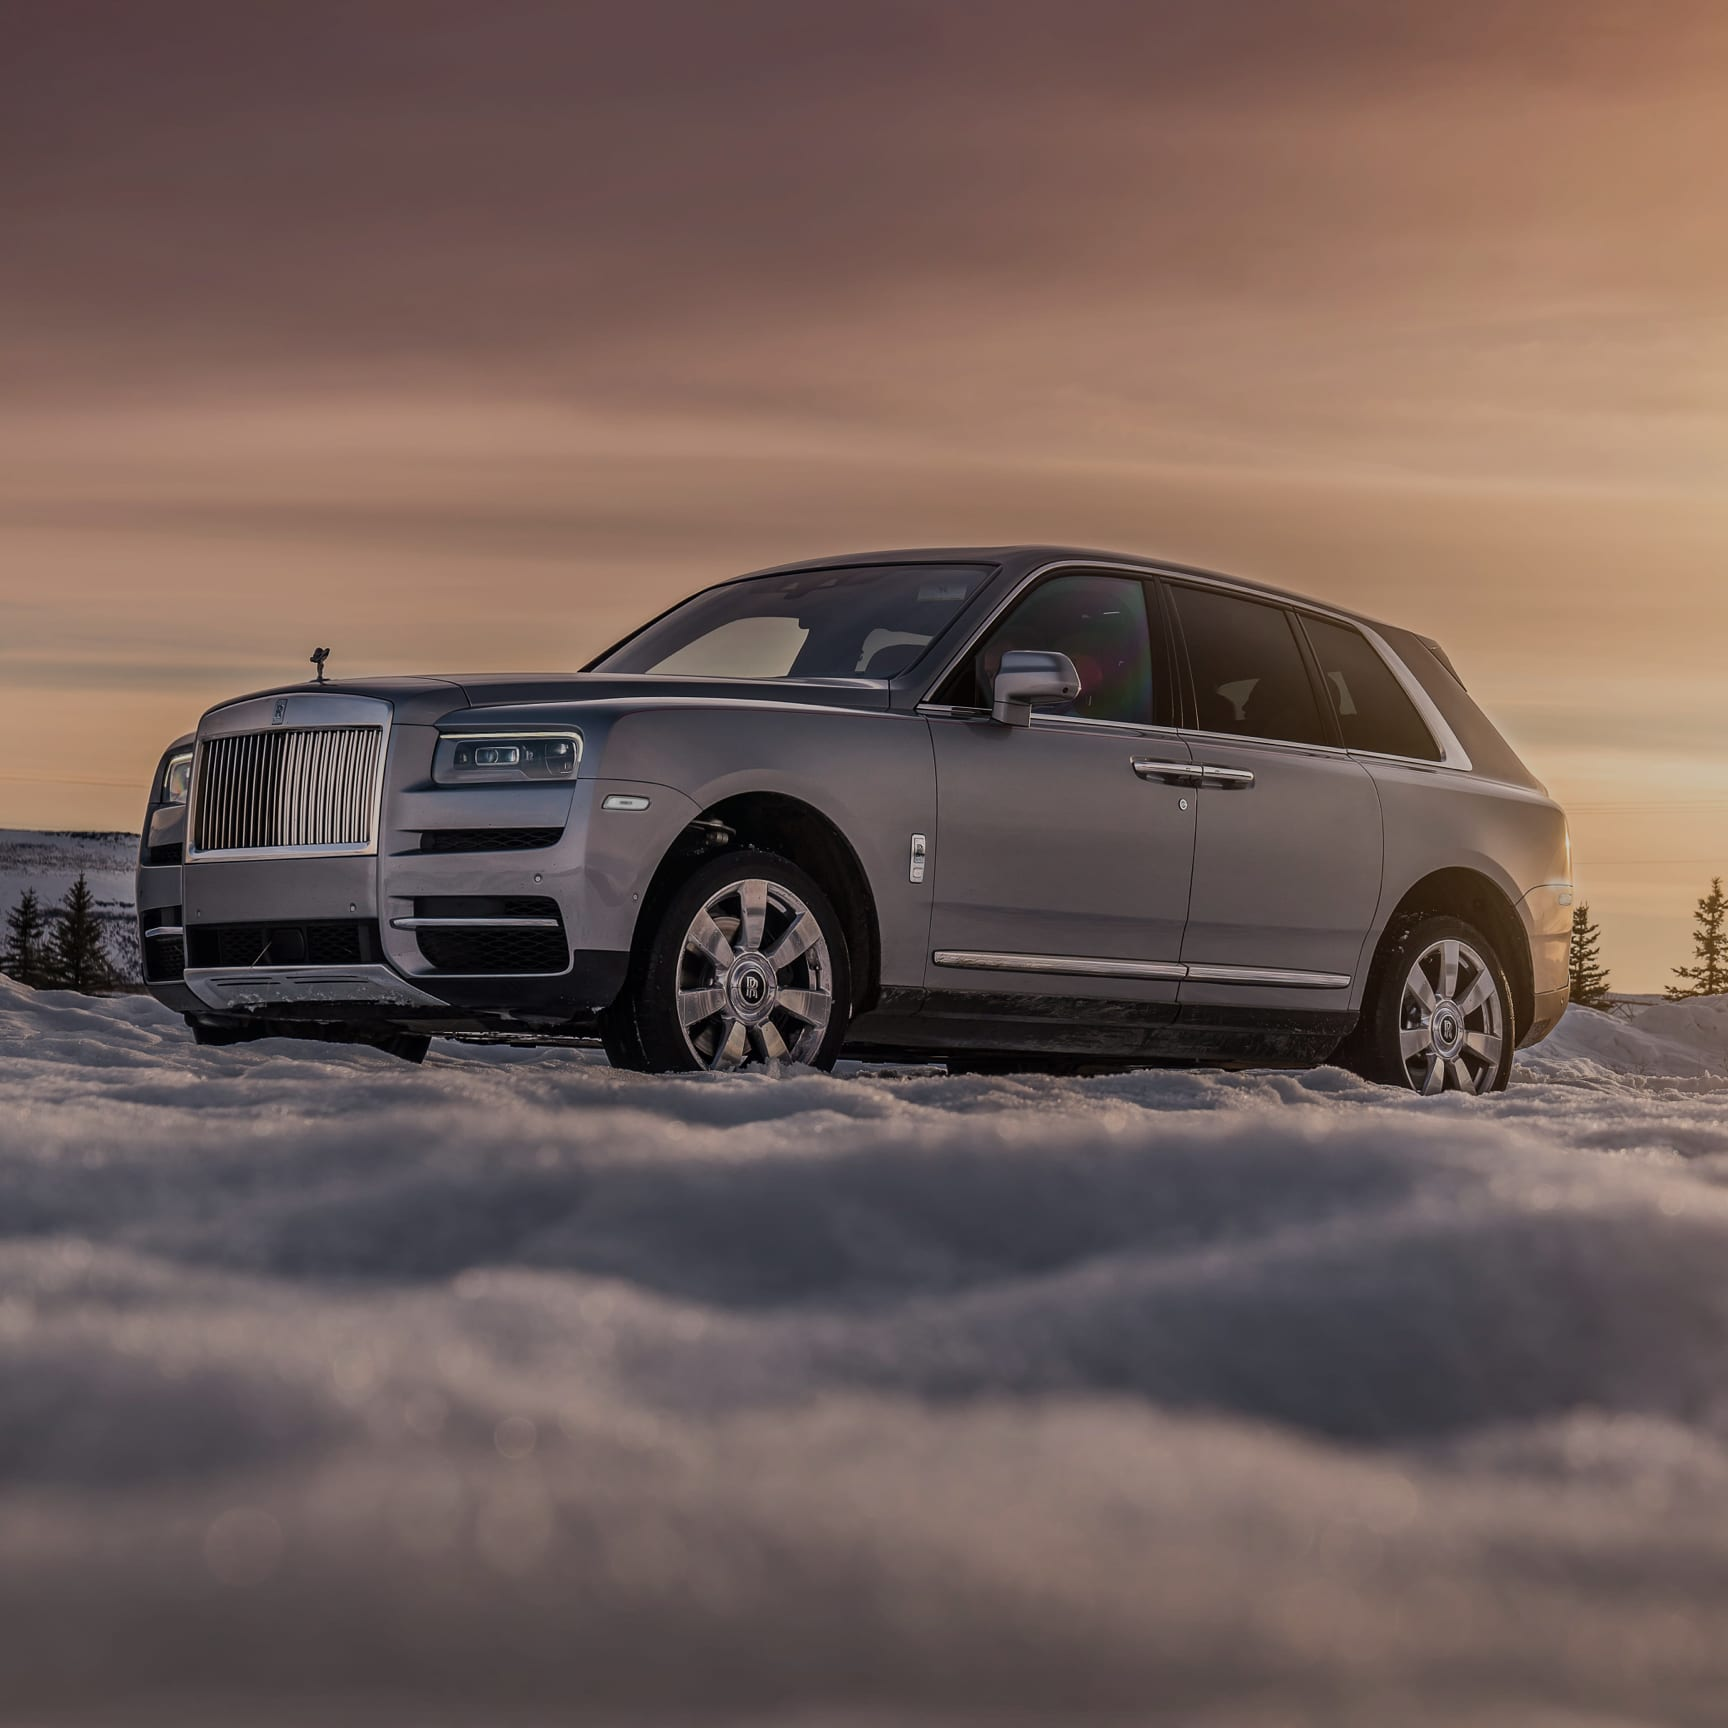 Rolls-Royce pioneers the world's first super-luxury all-terrain SUV. Cullinan is effortless, everywhere.